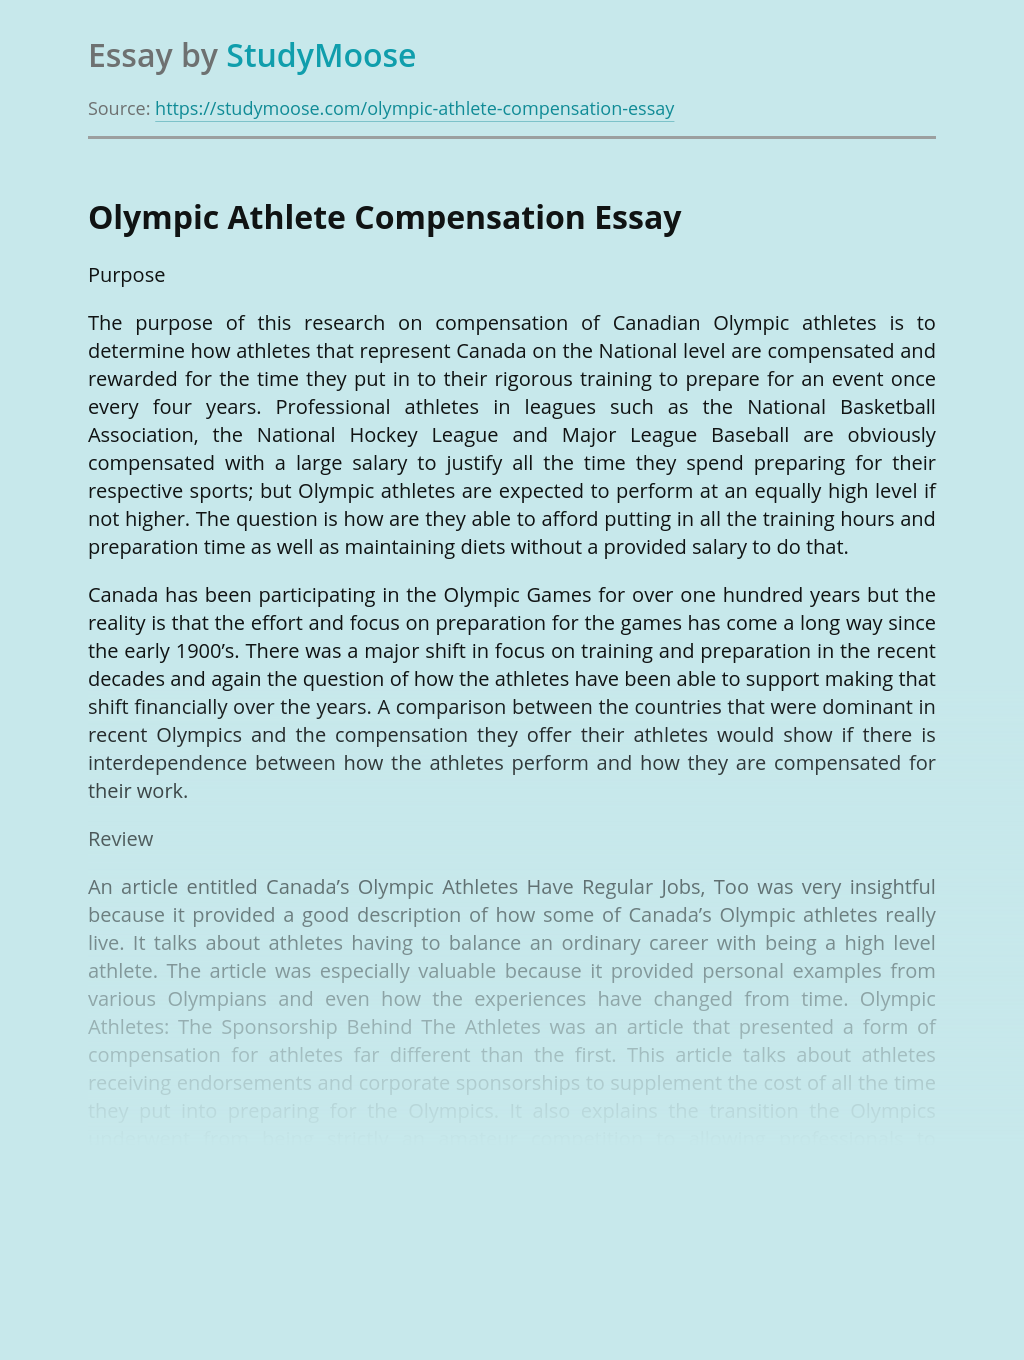 Olympic Athlete Compensation